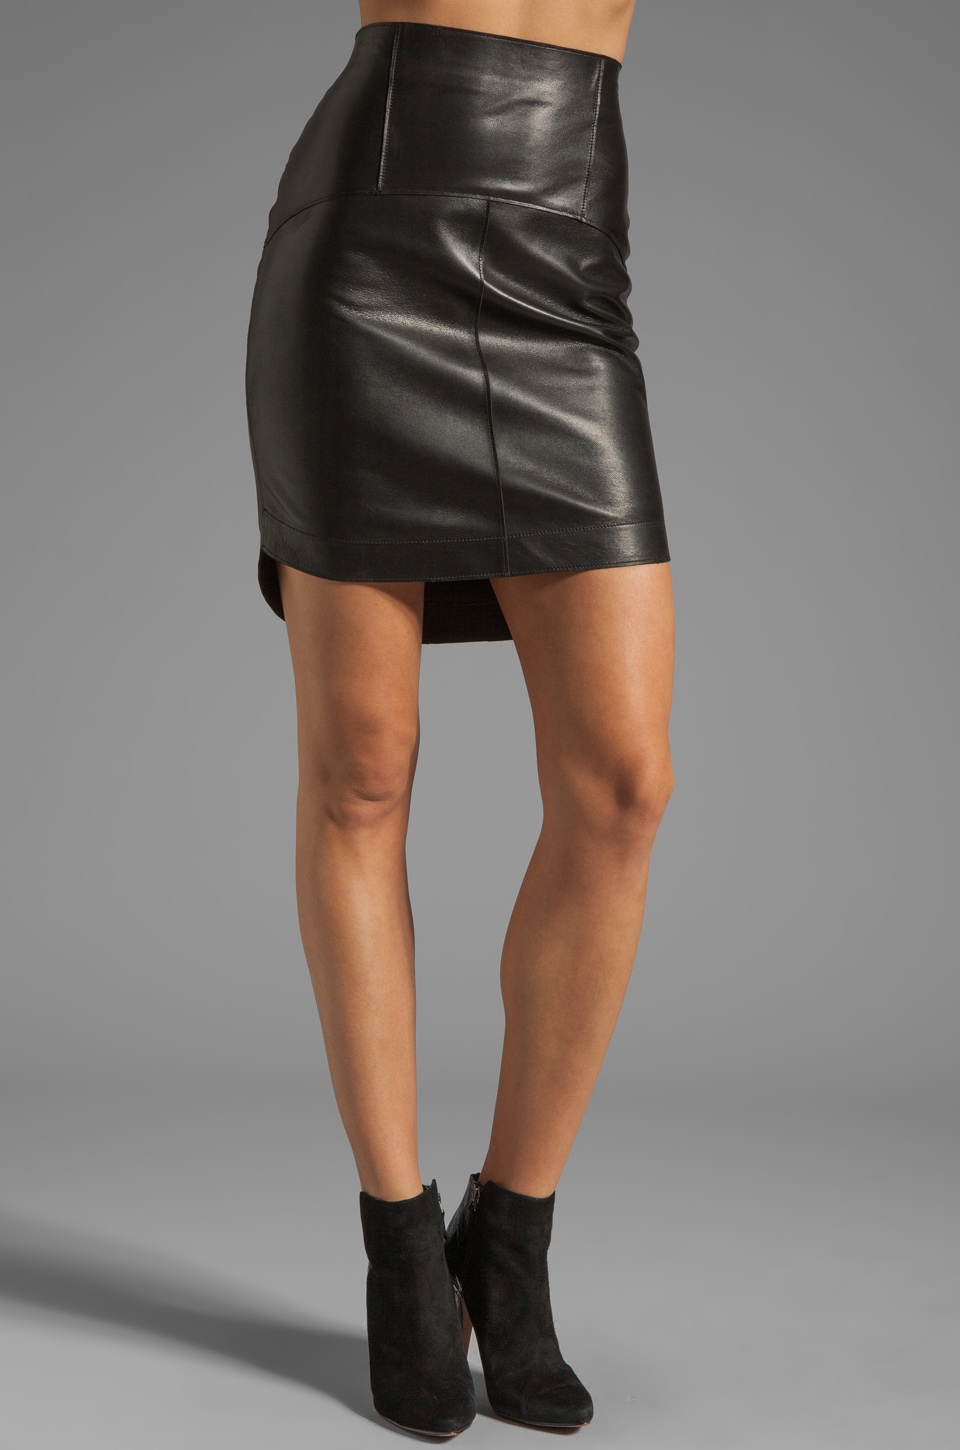 Graham & Spencer Leather Skirt in Black